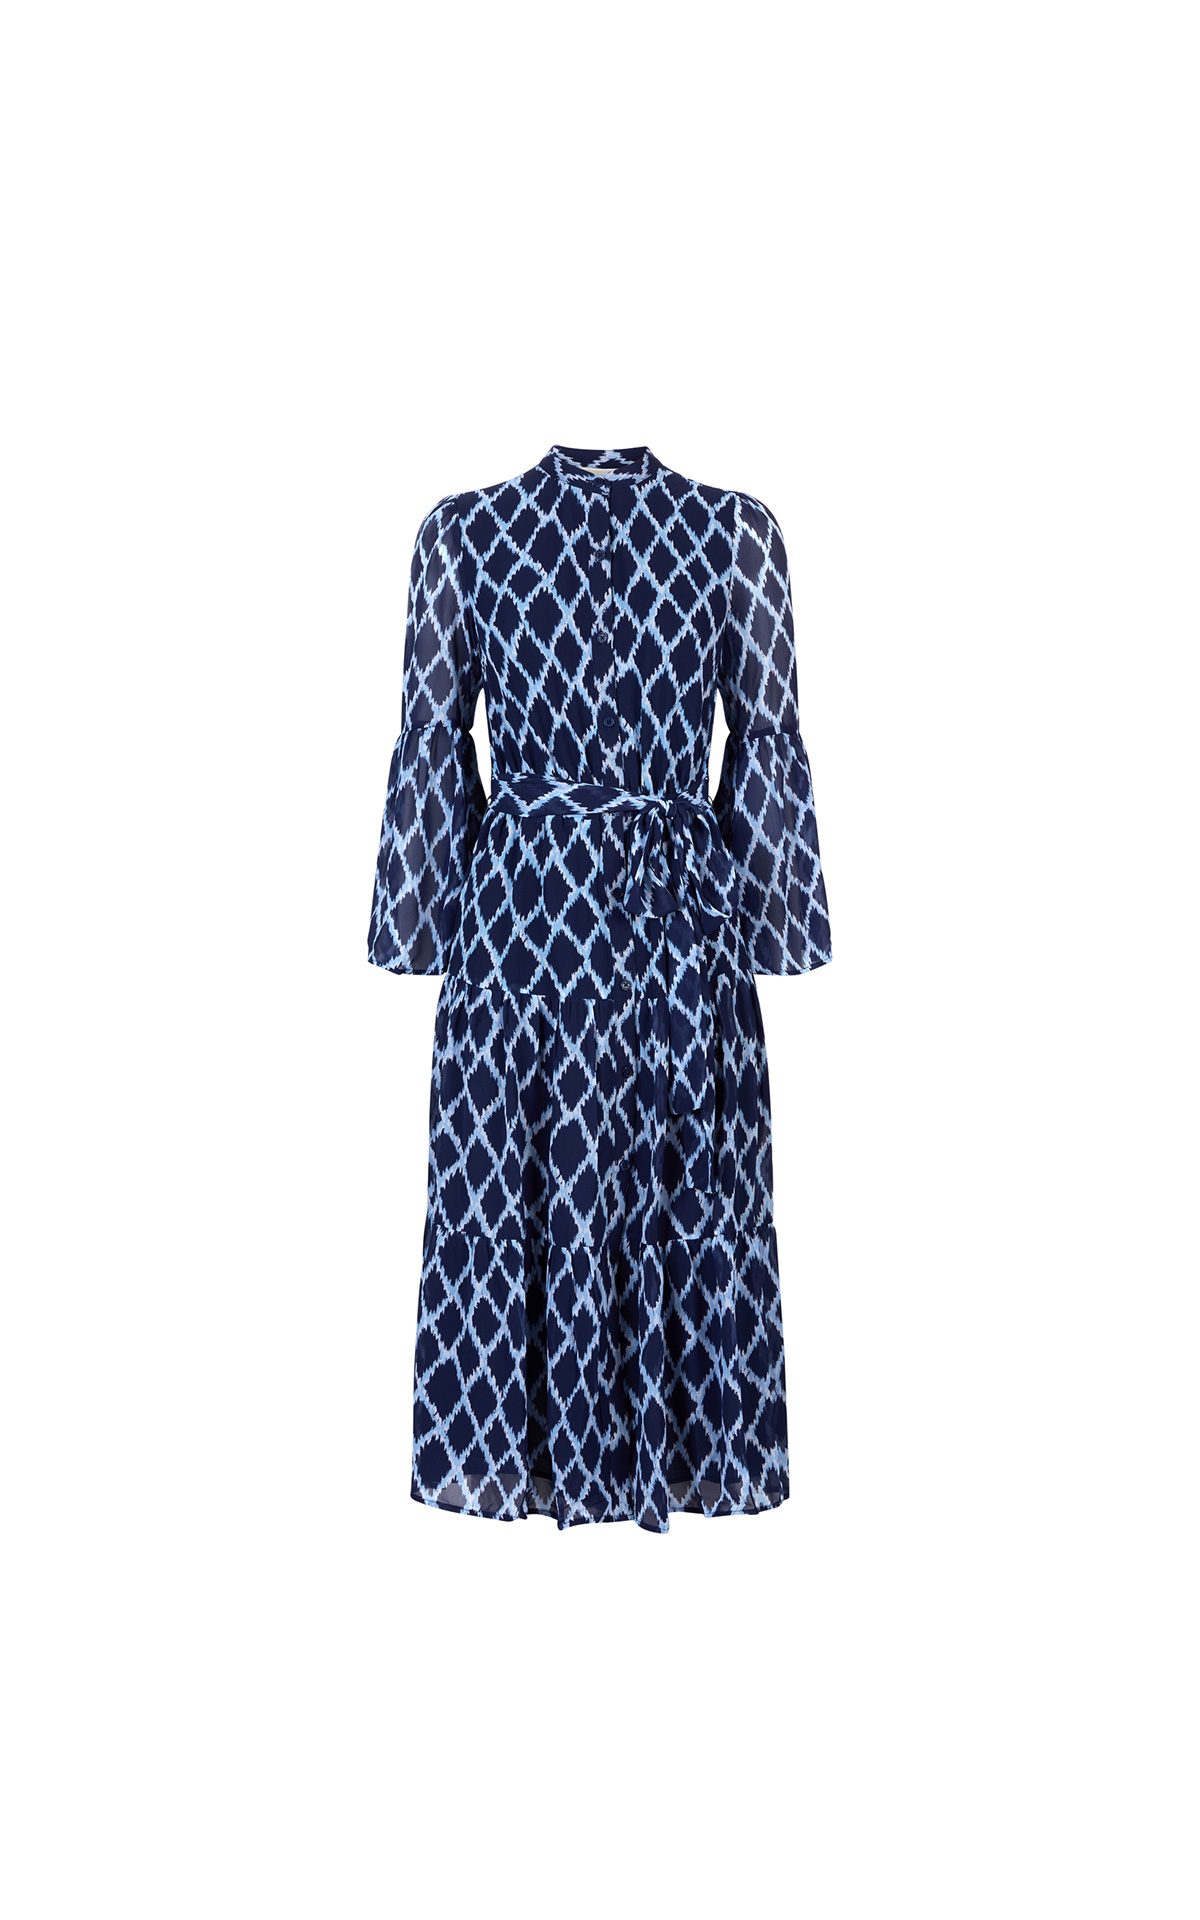 Michael Kors Women's Mega Diamond Ikat dress in shore blue at The Bicester Village Shopping Collection